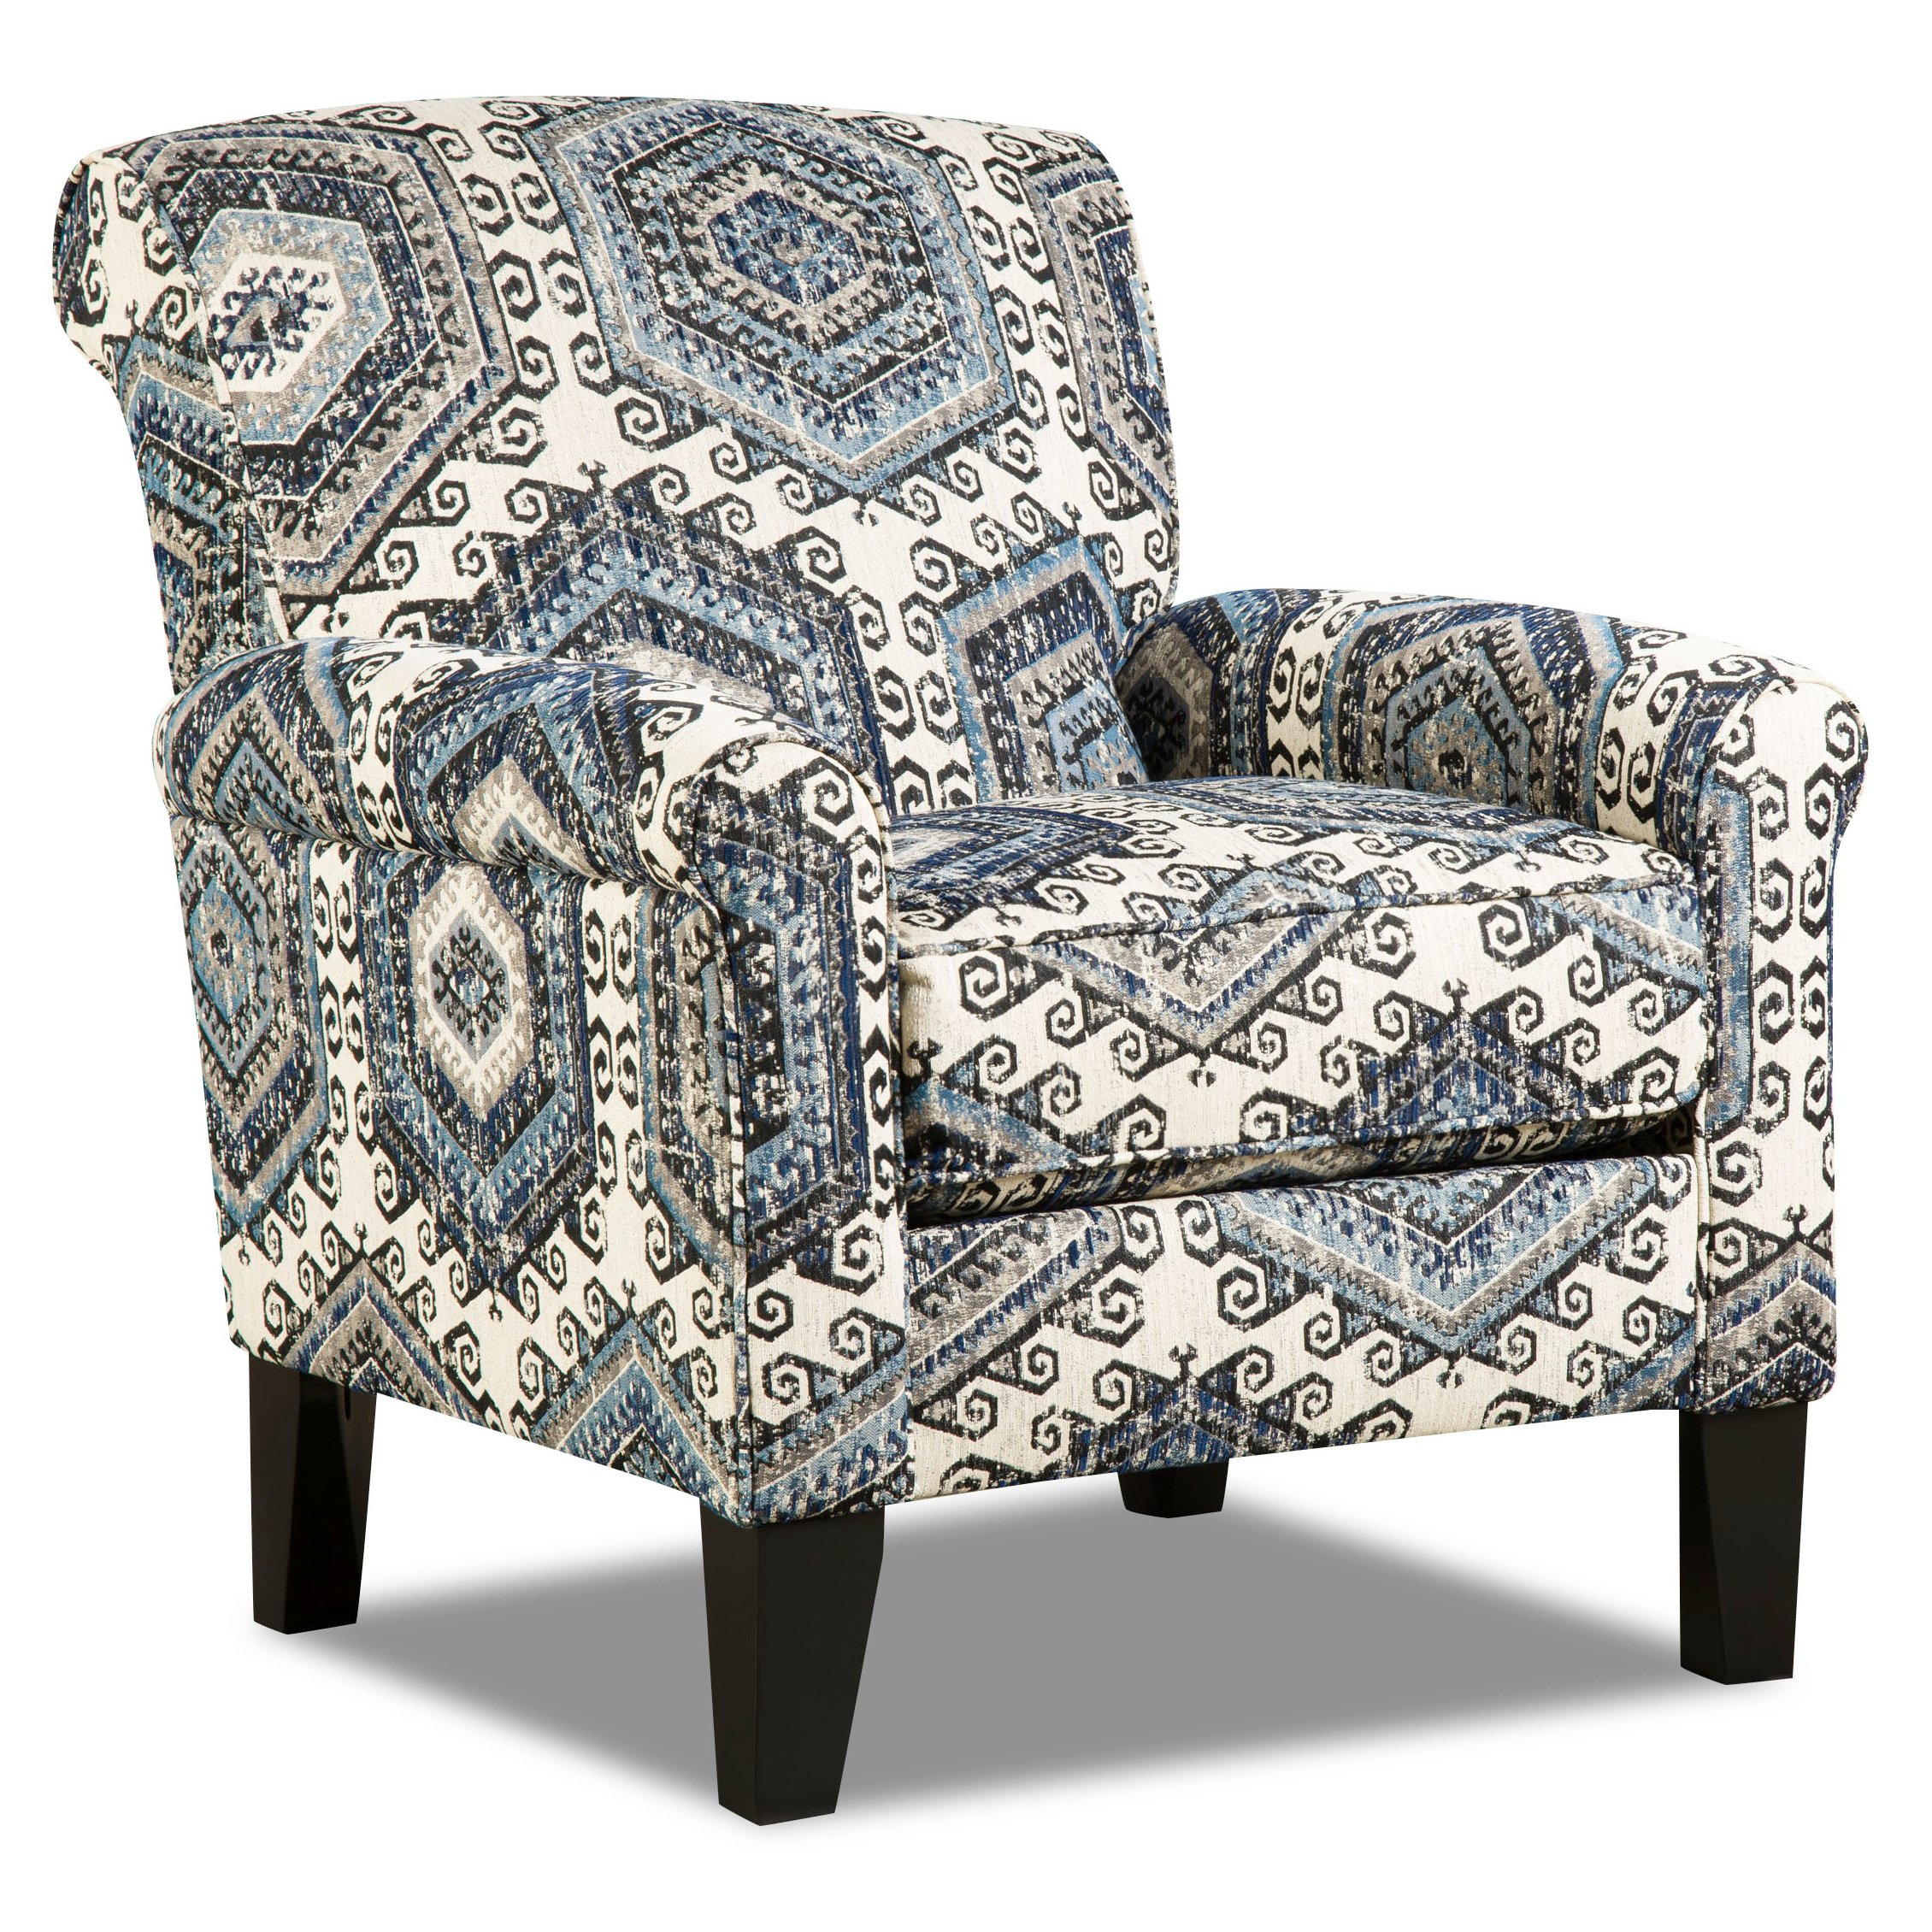 2160-012 Simmons Lane Accent Chair